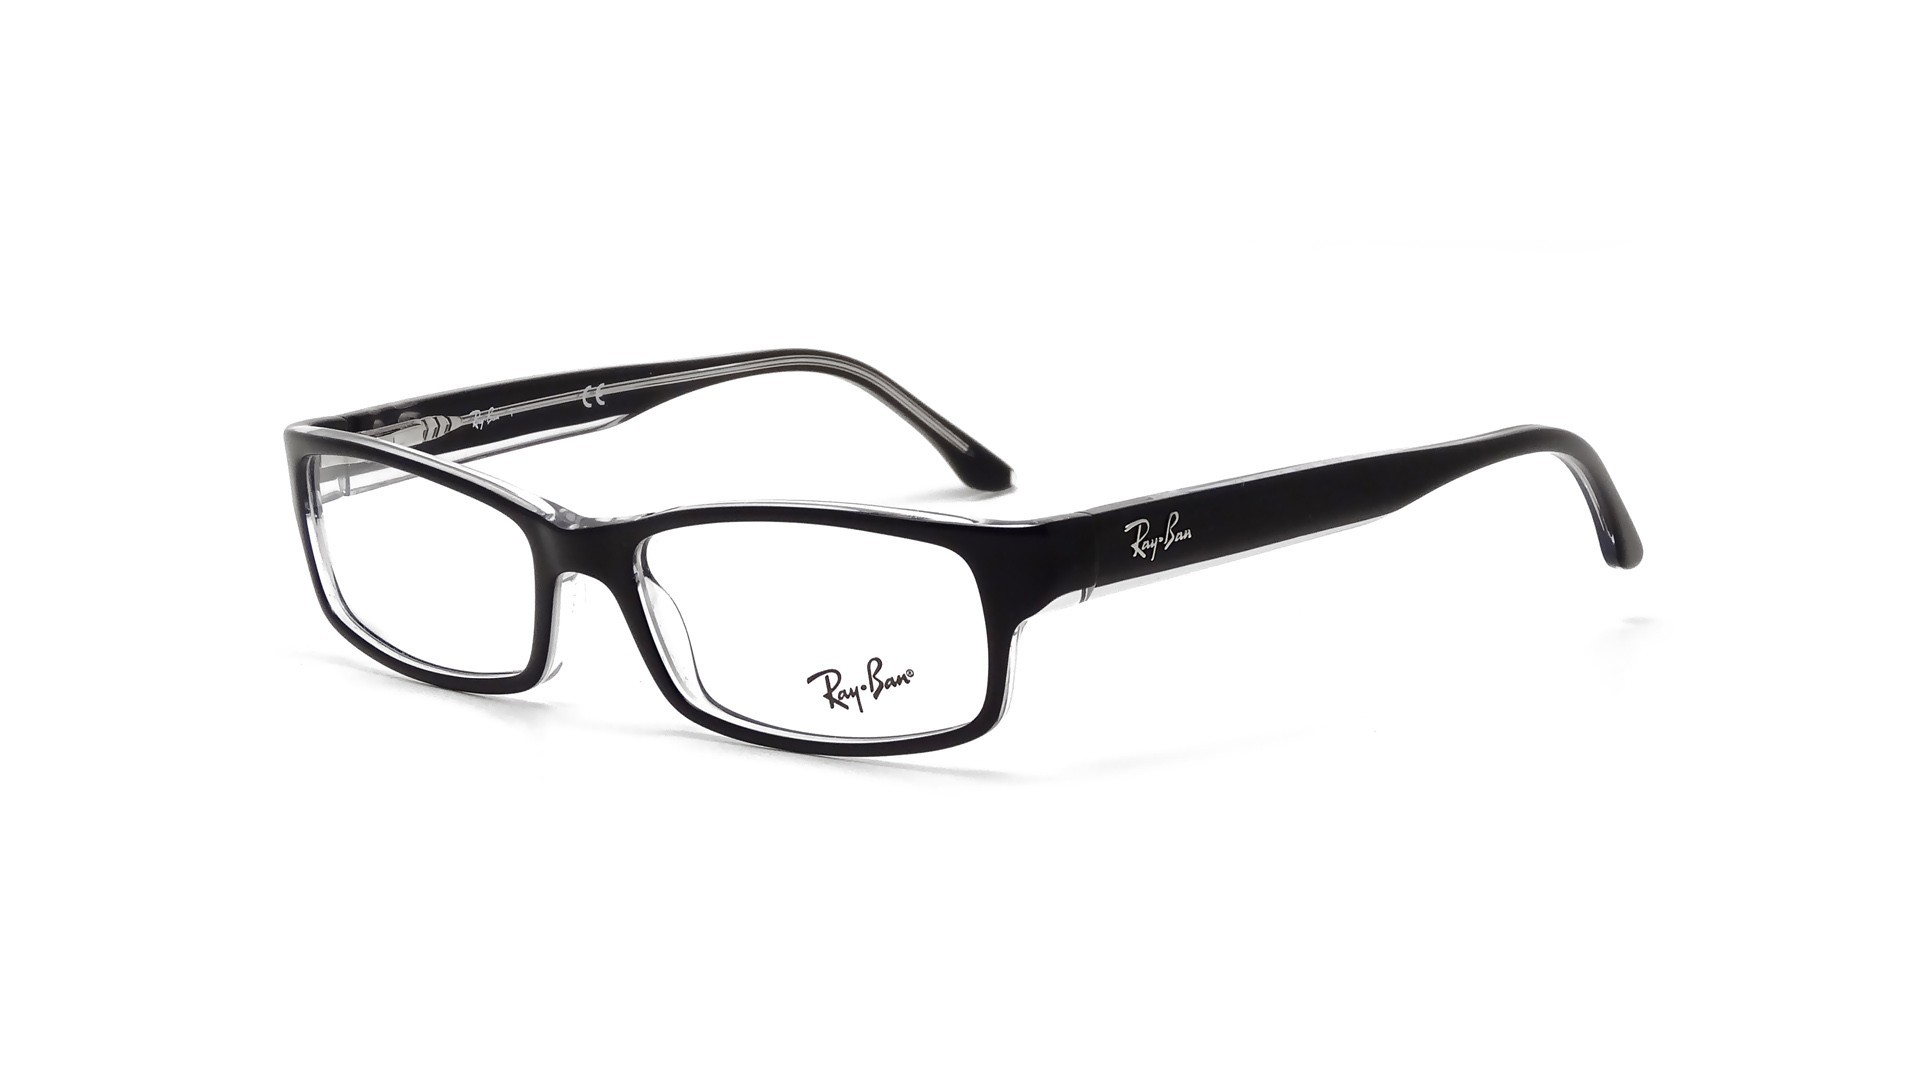 ray ban 5114 review